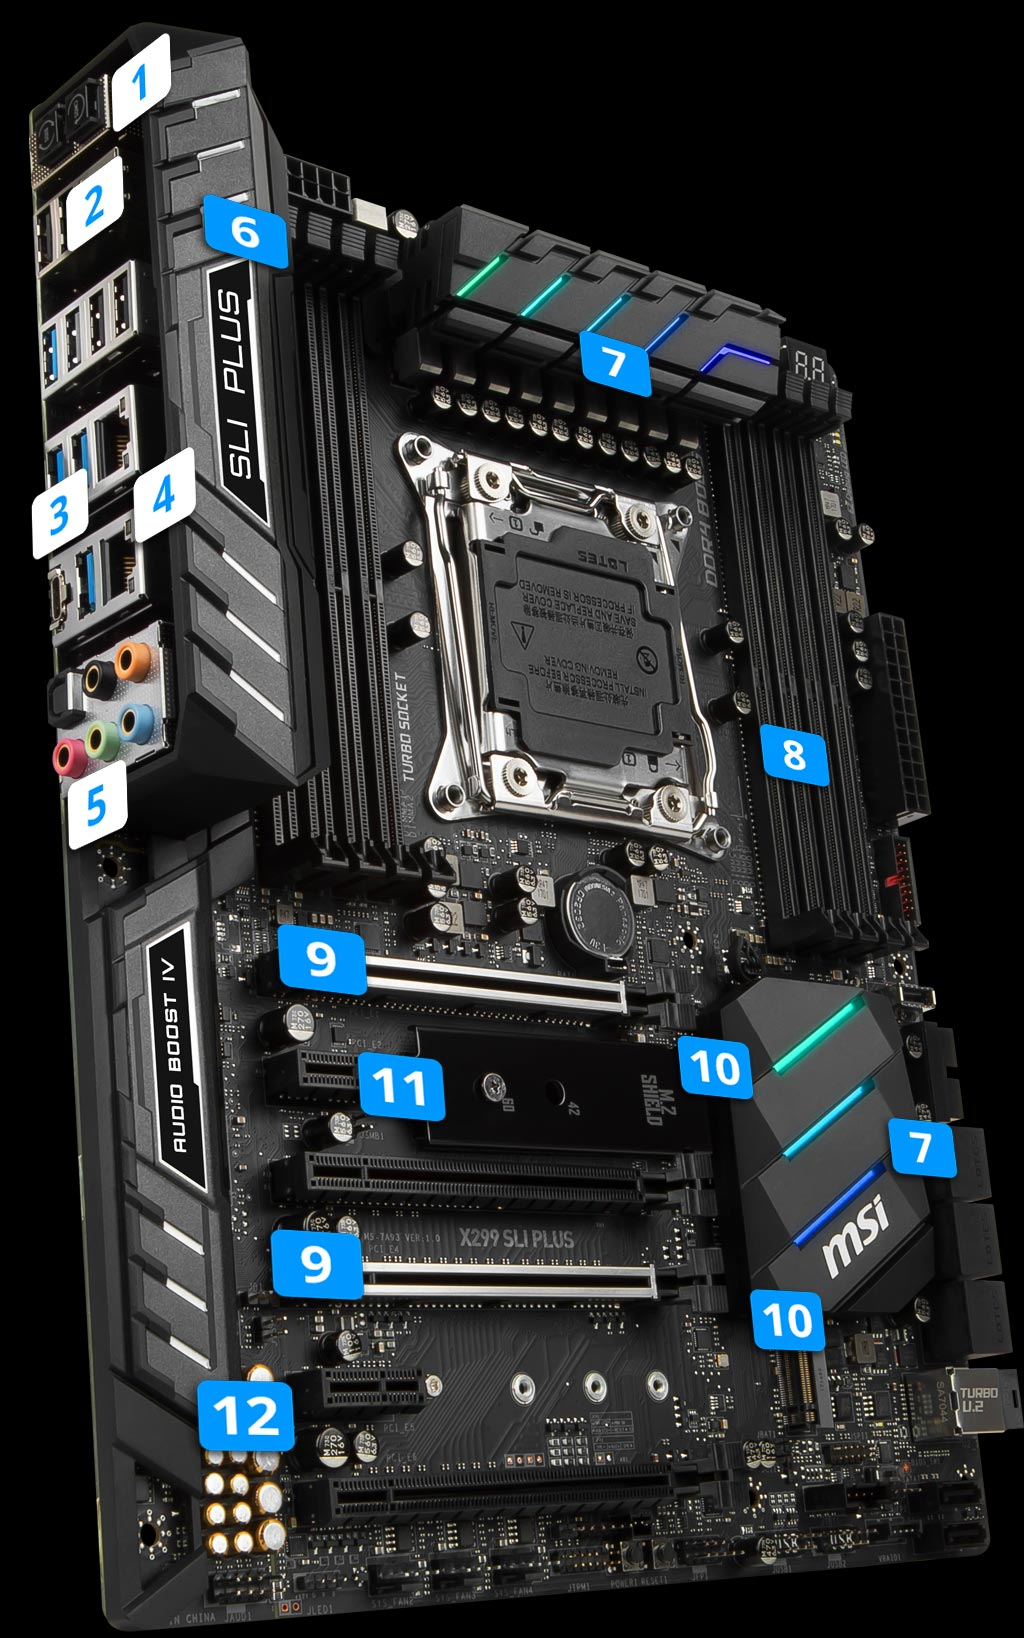 MSI X99-A Sli Plus USB 3.1 Ready DDR4 LGA2011v3 Socket Motherboard